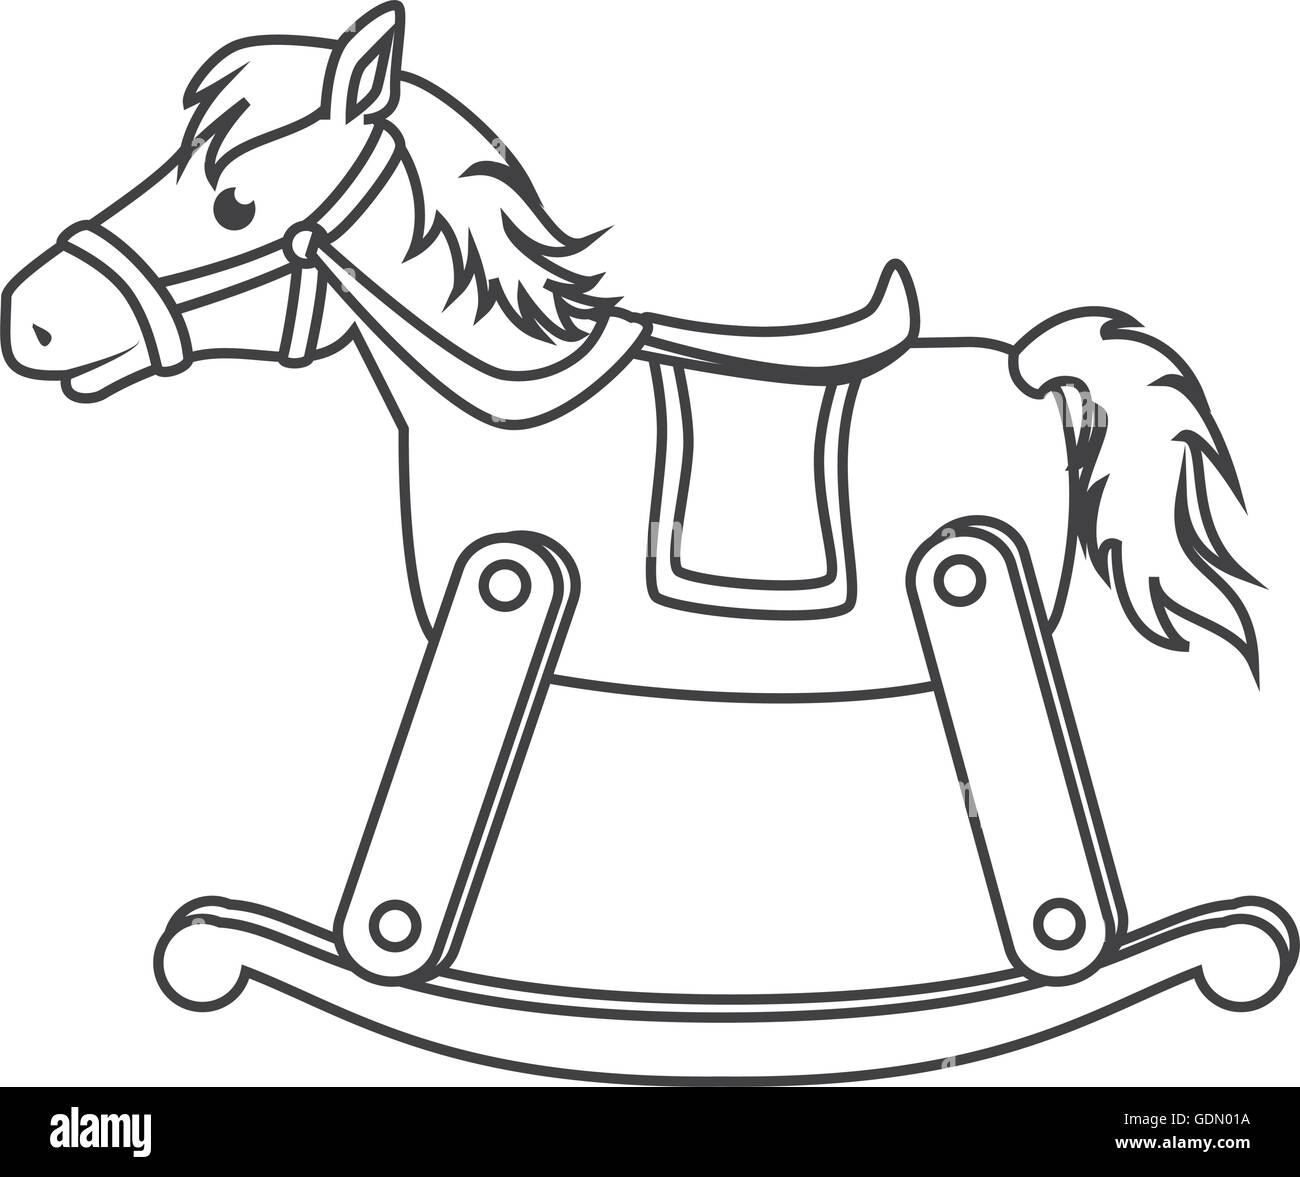 Wooden Horse Toy Icon Vector Illustration Stock Vector Image Art Alamy